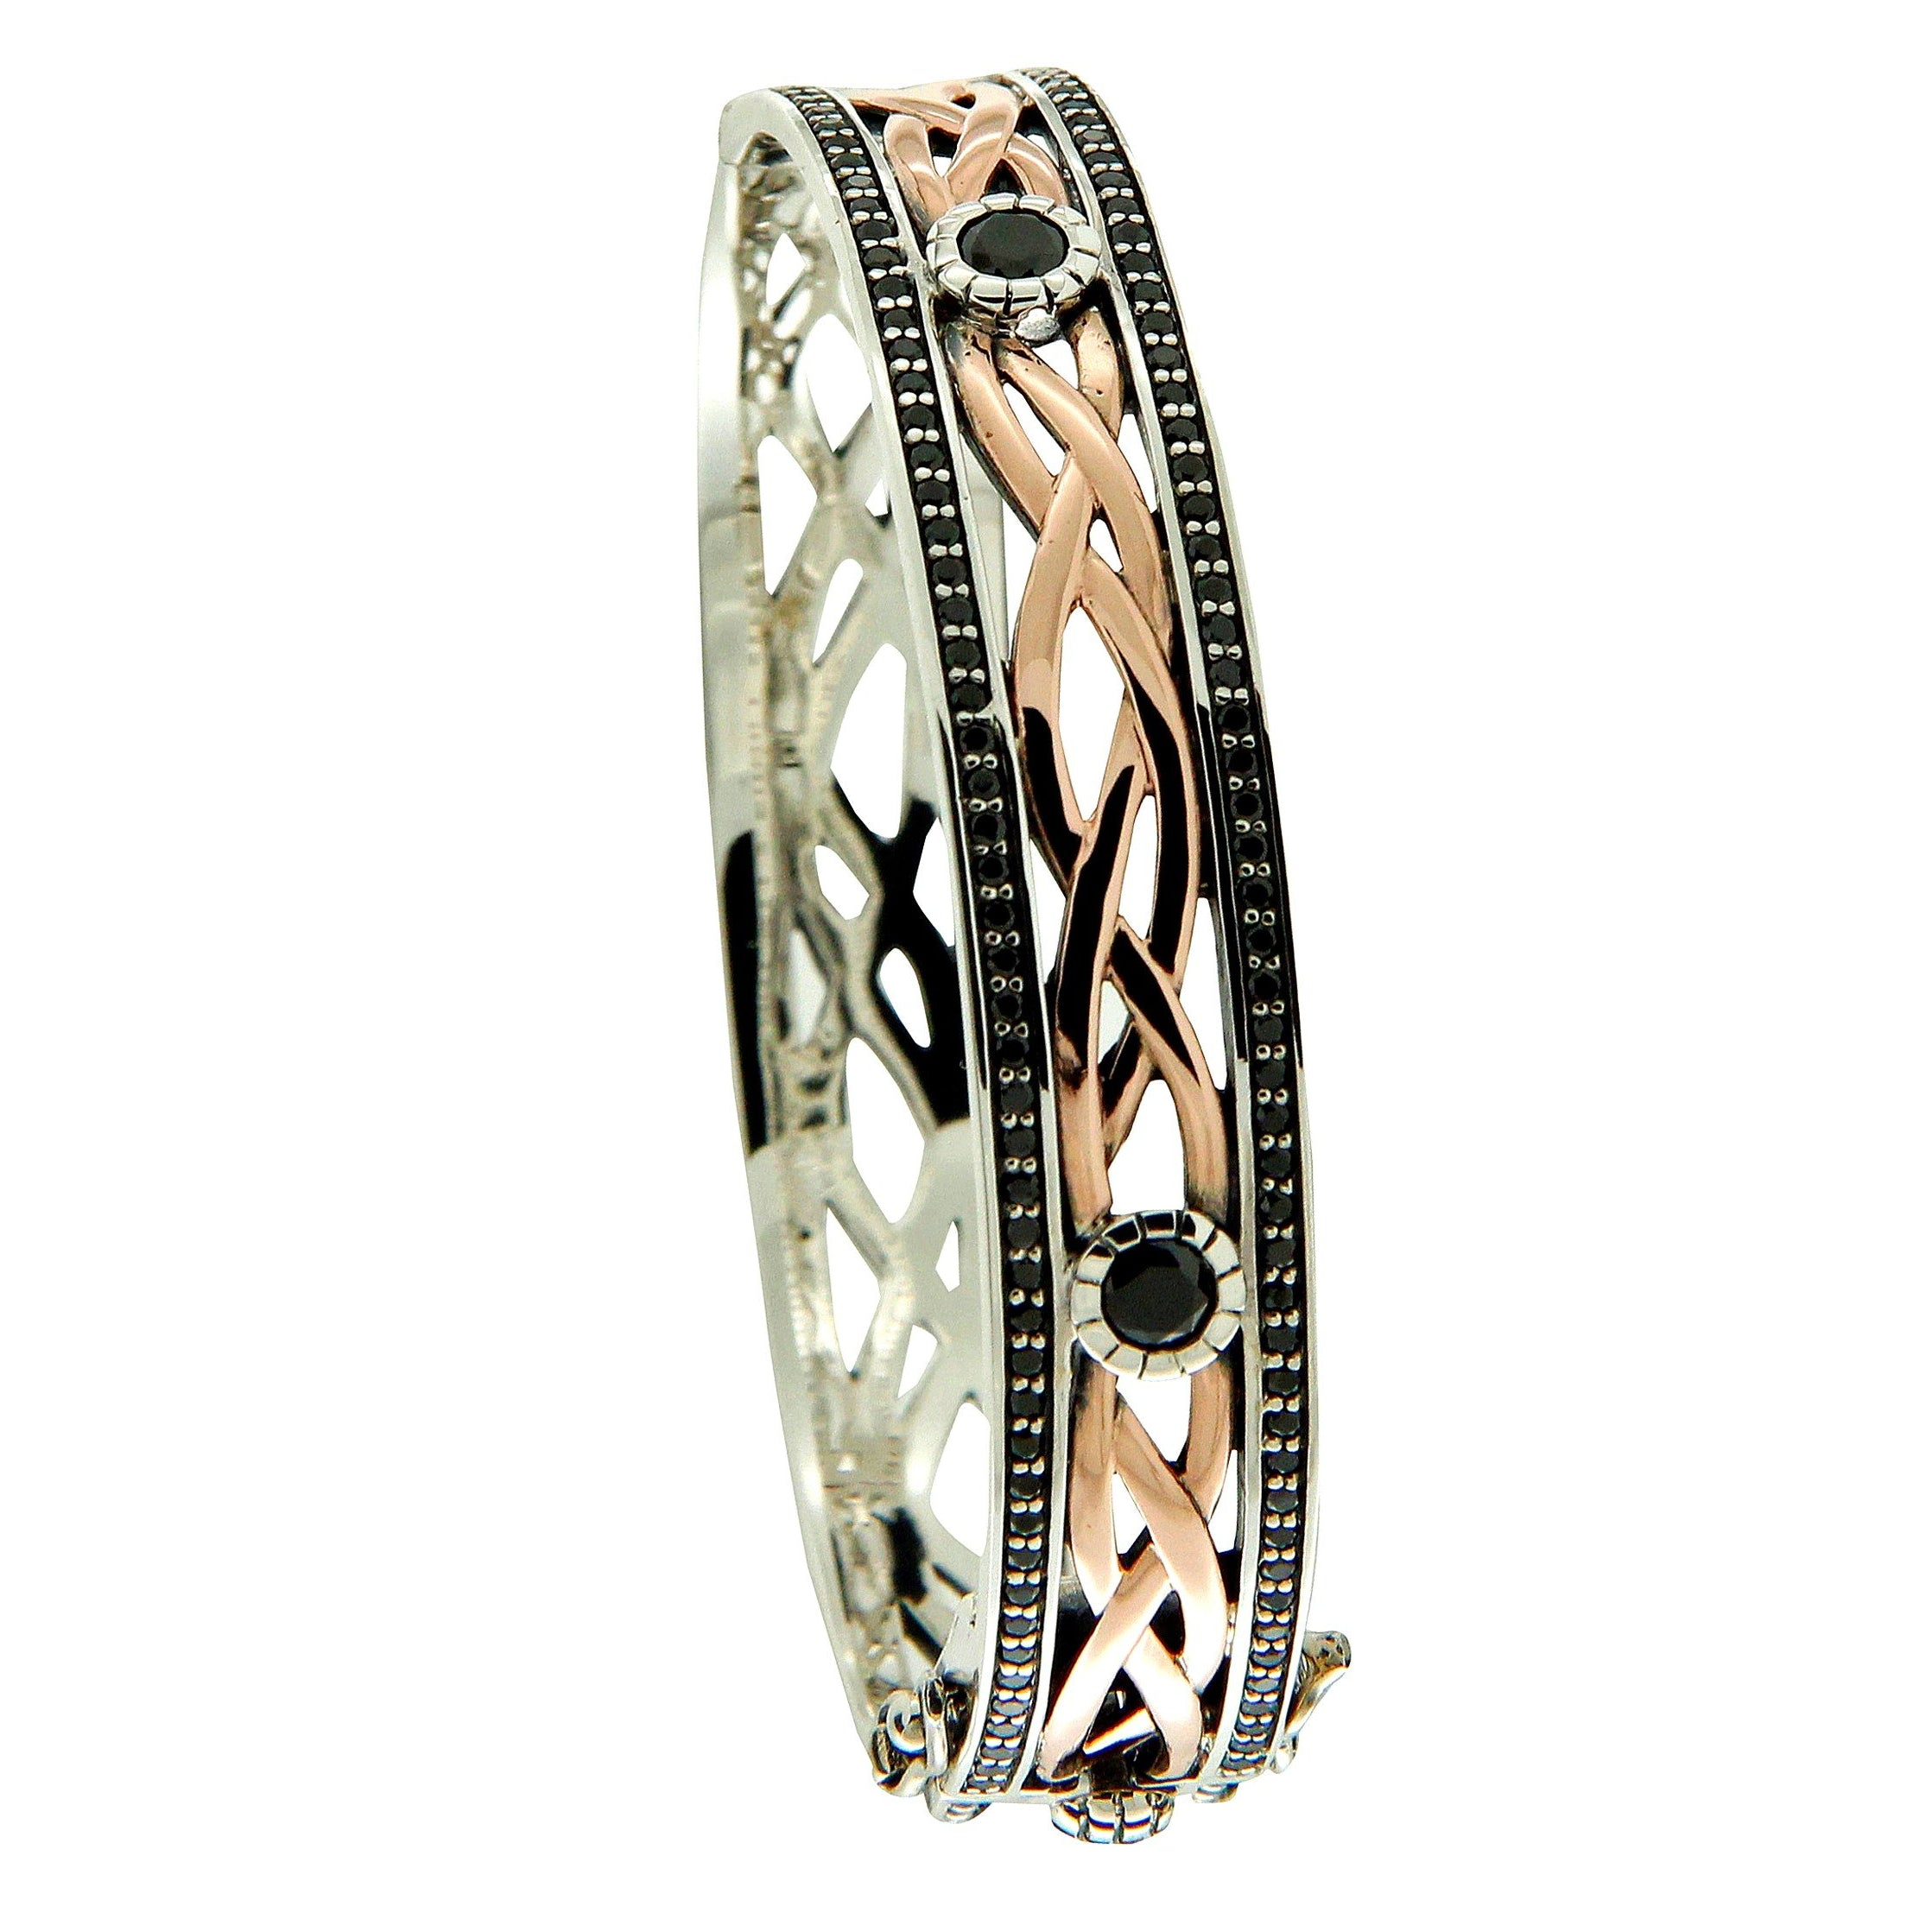 Brave Heart Bangle - Rose + black CZ